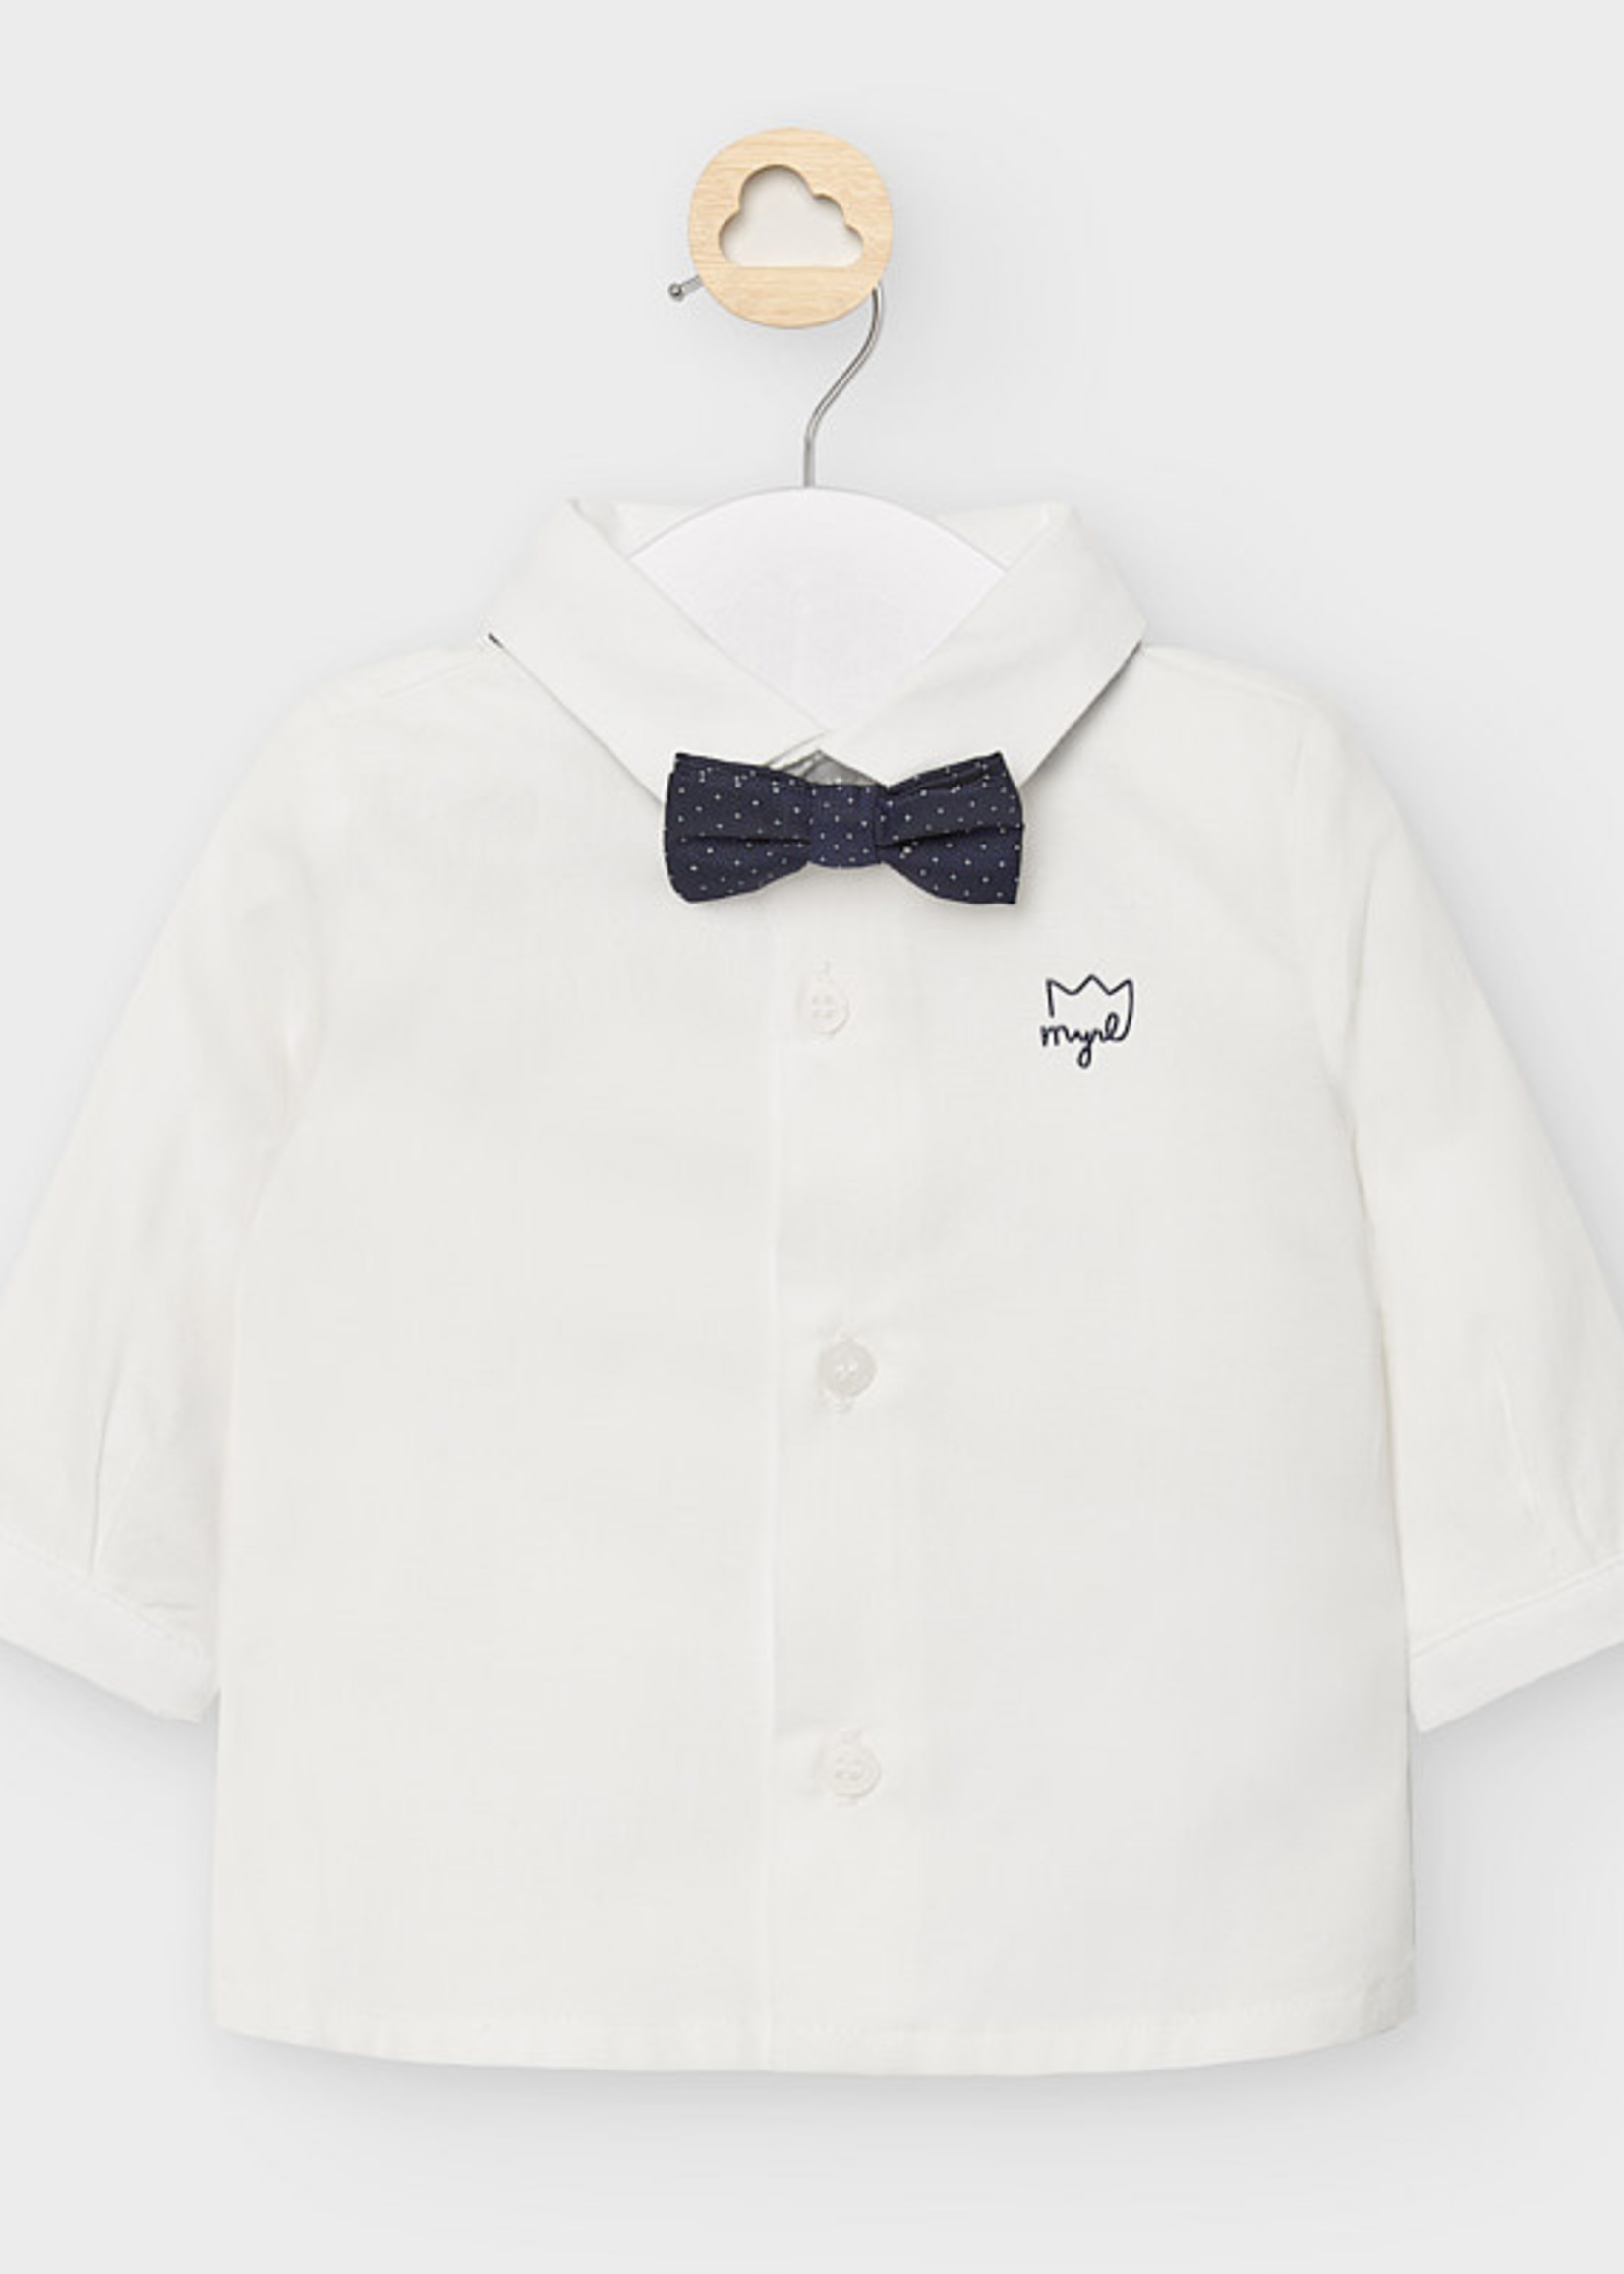 Mayoral MAYORAL LS TSHIRT AND BOWTIE